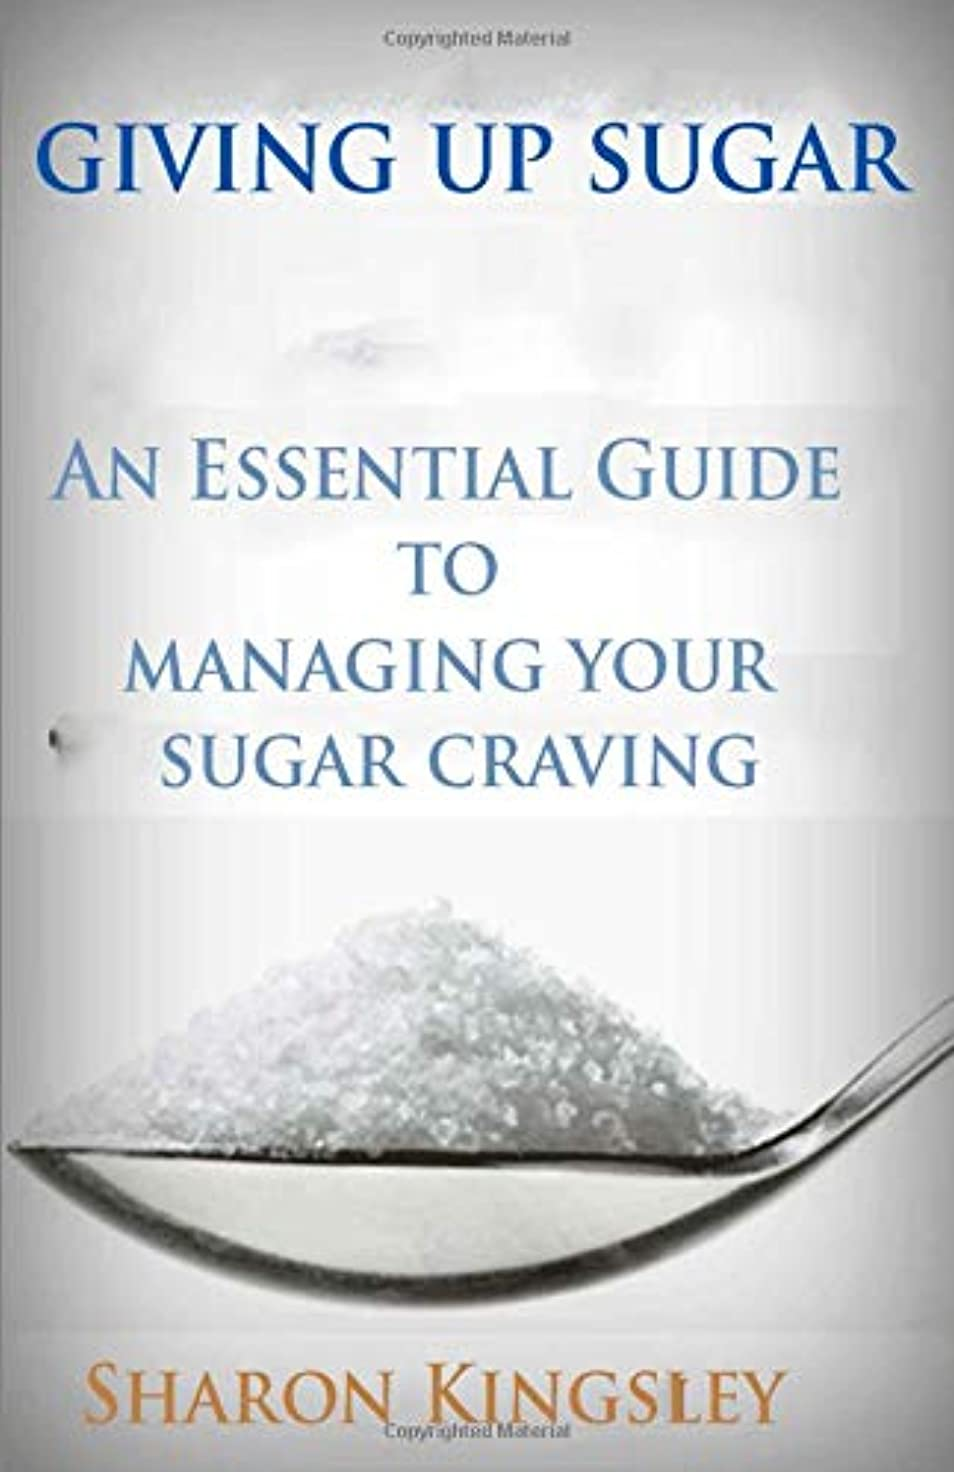 ワックス探検マークダウンGiving Up Sugar: An Essential Guide To Managing Your Sugar Addiction Cut Cravings and Detox (Health and Wellbeing, Diet, Exercise, Fitness Self Improvement)